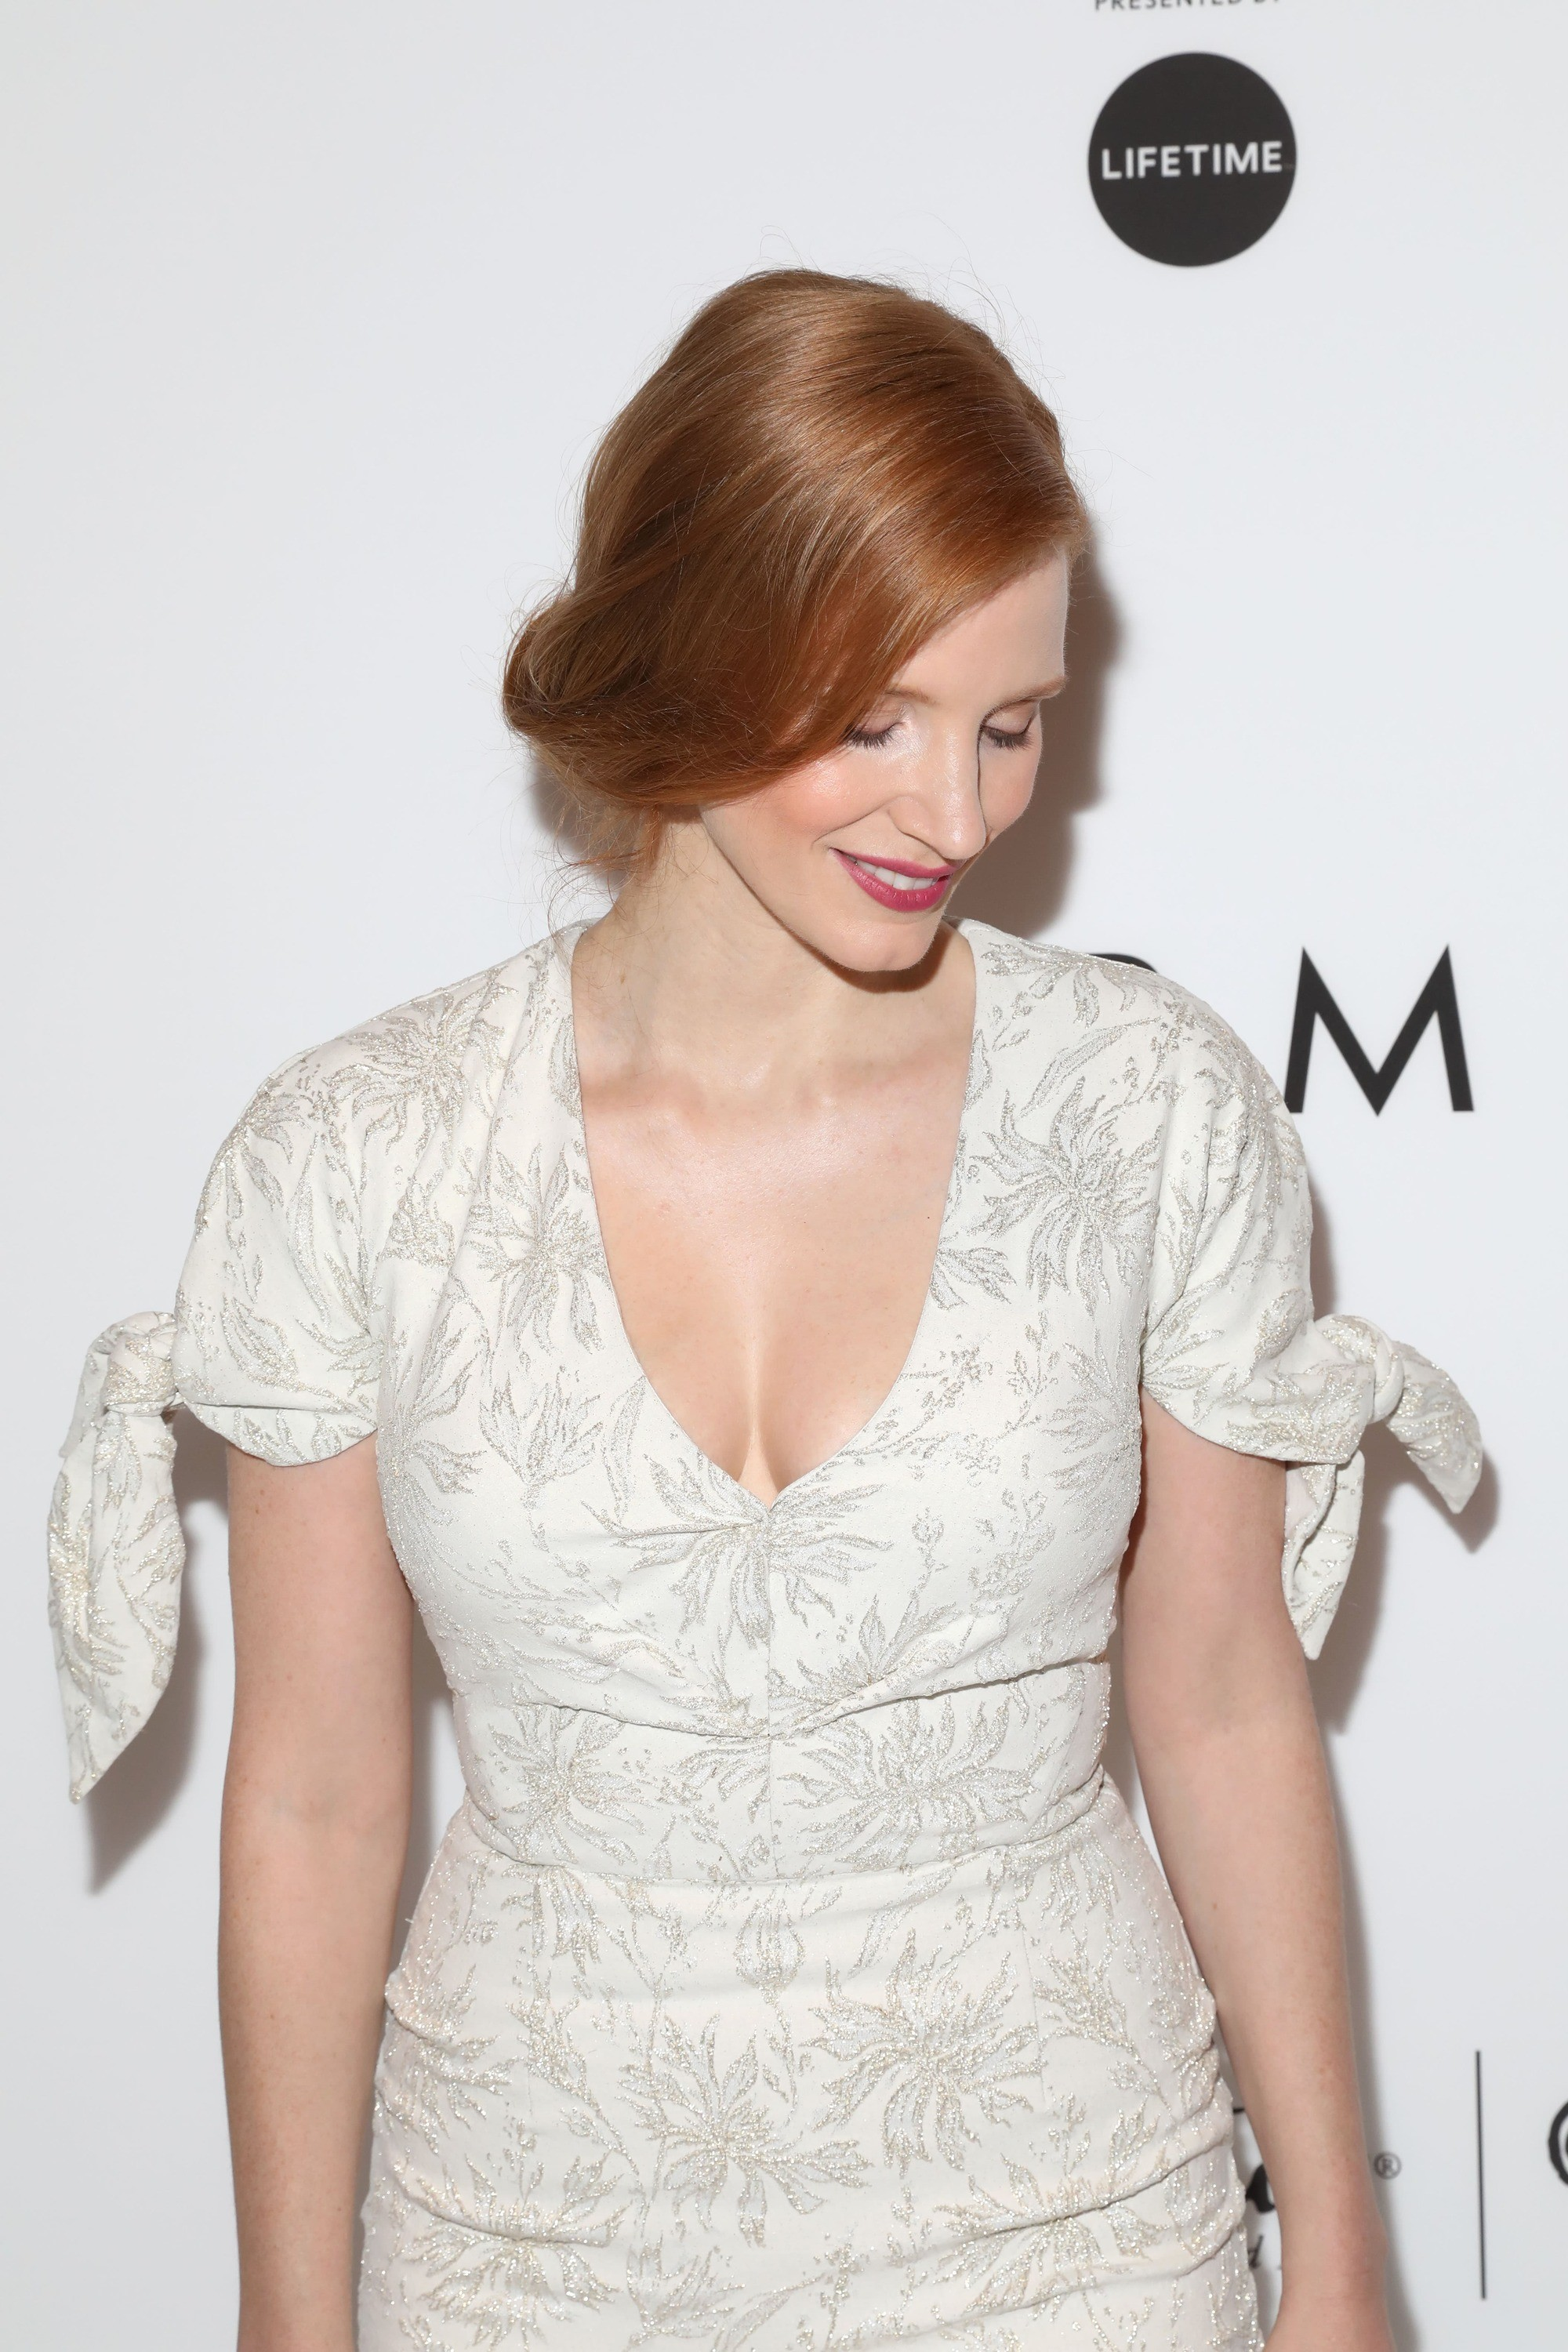 Jesscia Chastain - loose updo - strawberry blonde hair